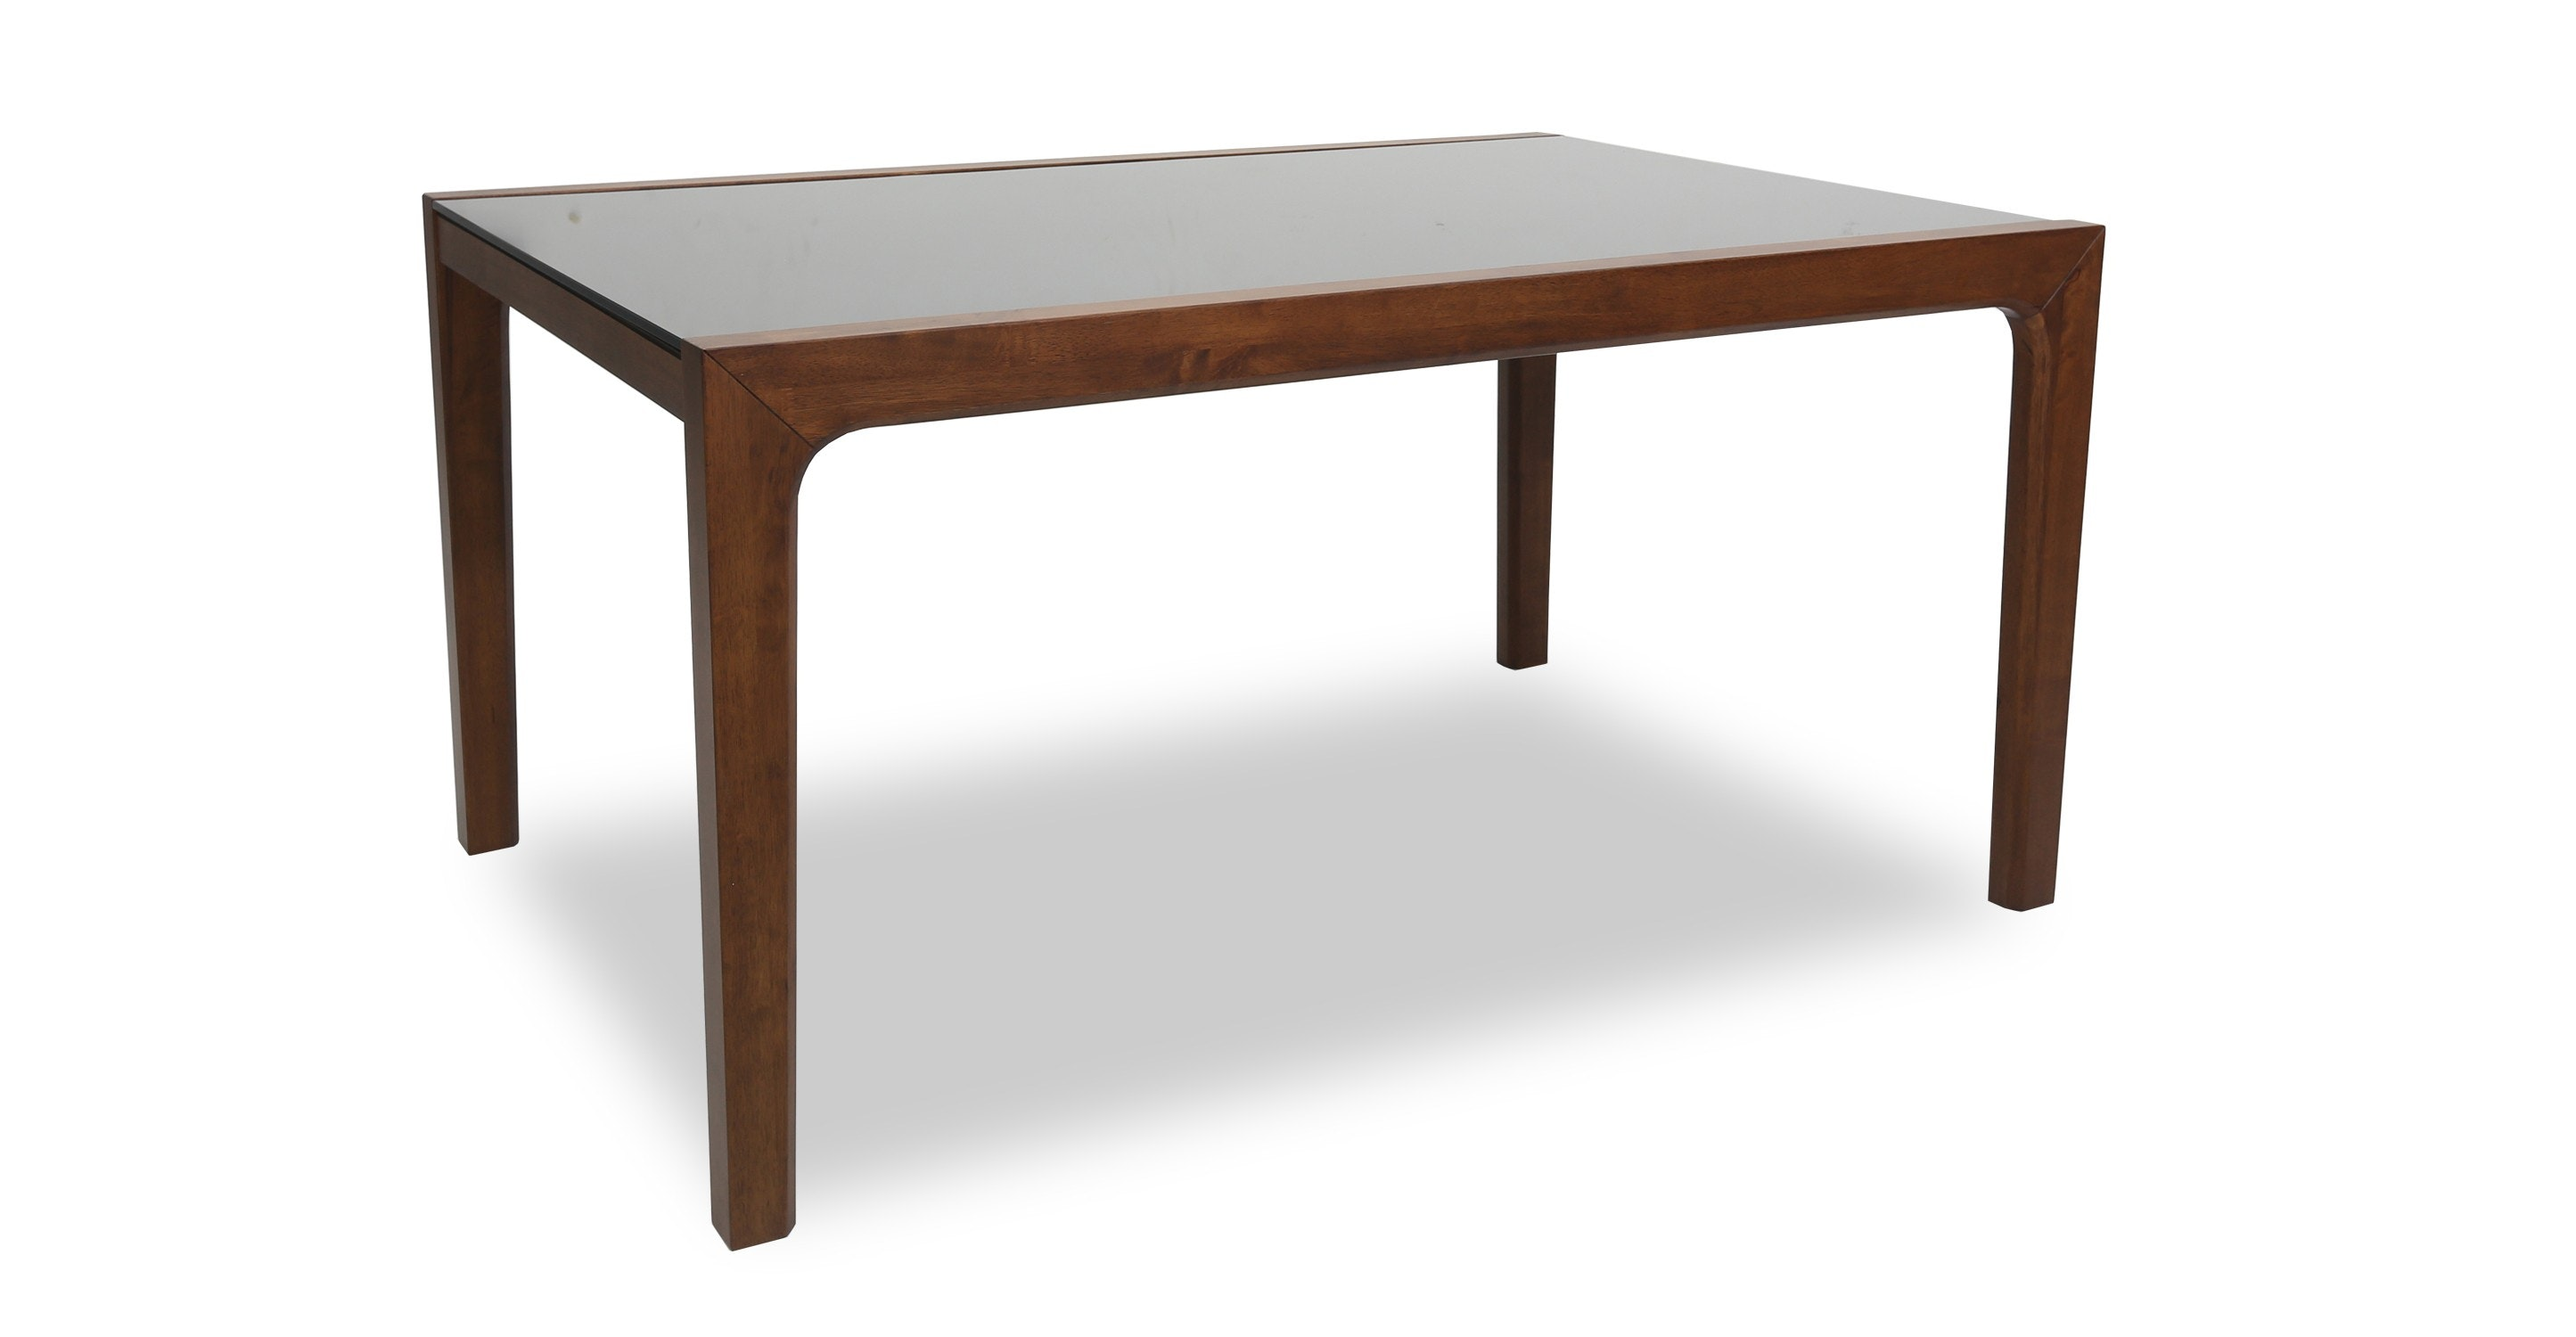 Baskets article modern mid century and scandinavian furniture - Cole Glass Cocoa Dining Table For 6 Glass Tables